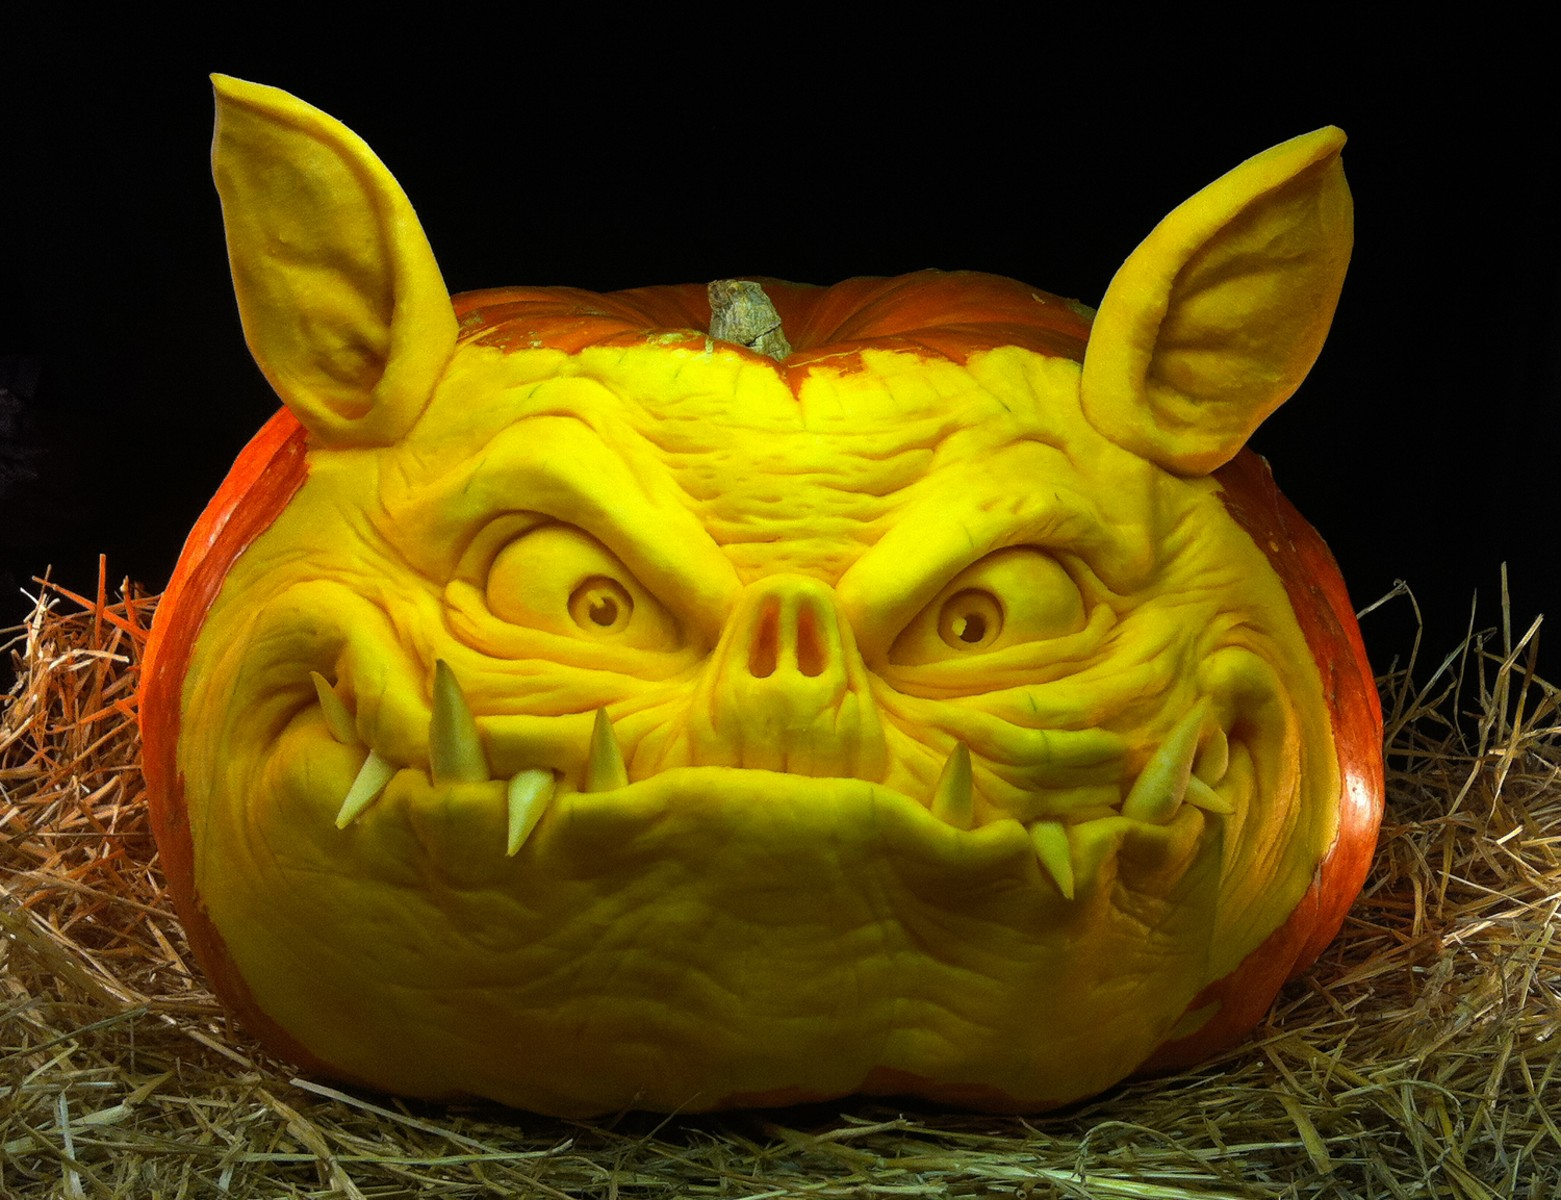 Ghoulishly Grand Carved Pumpkins